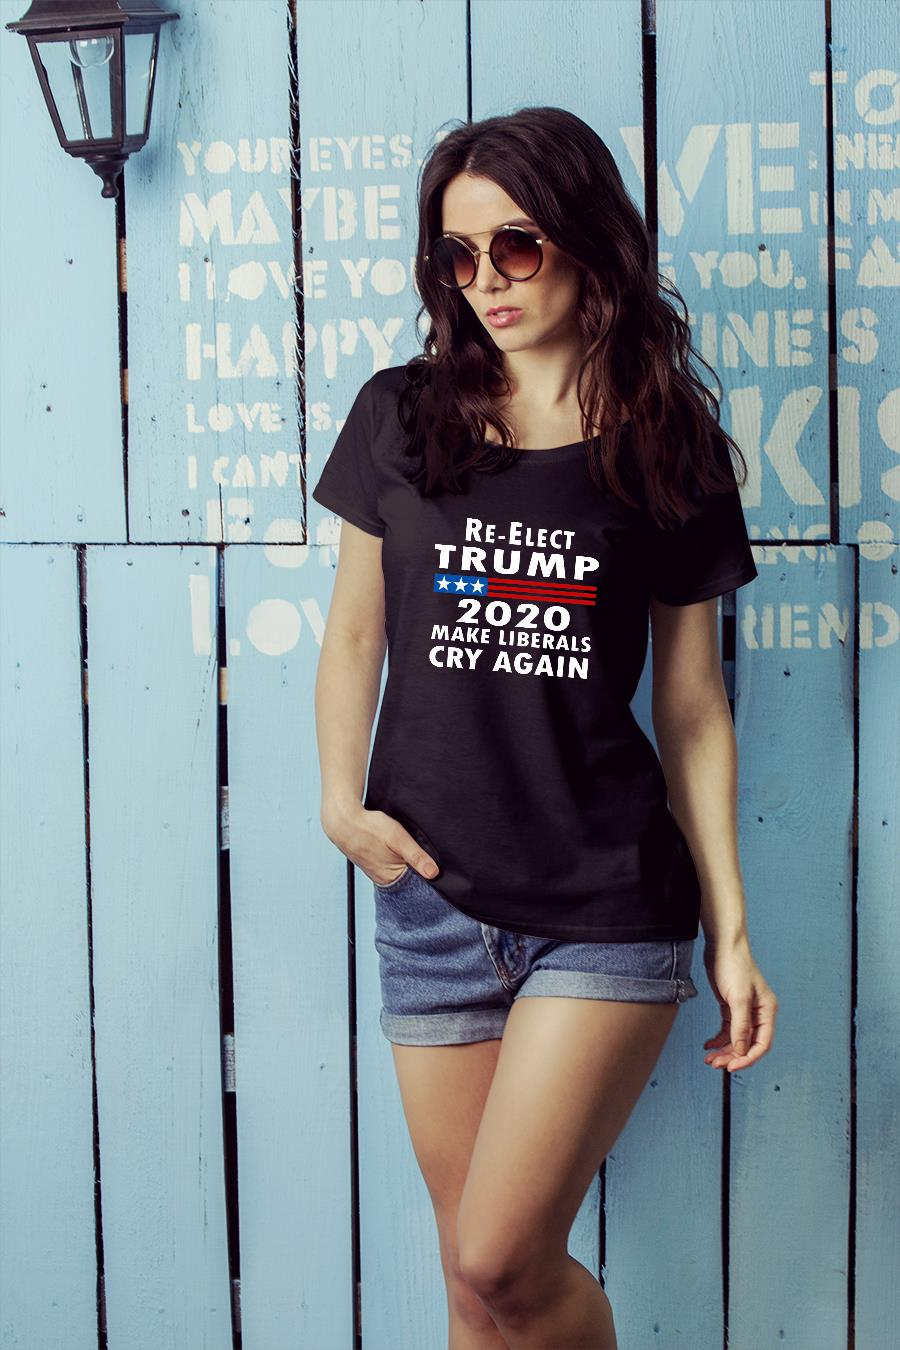 Re-elect Trump 2020 Make Liberals Cry Again Shirt ladies tee official